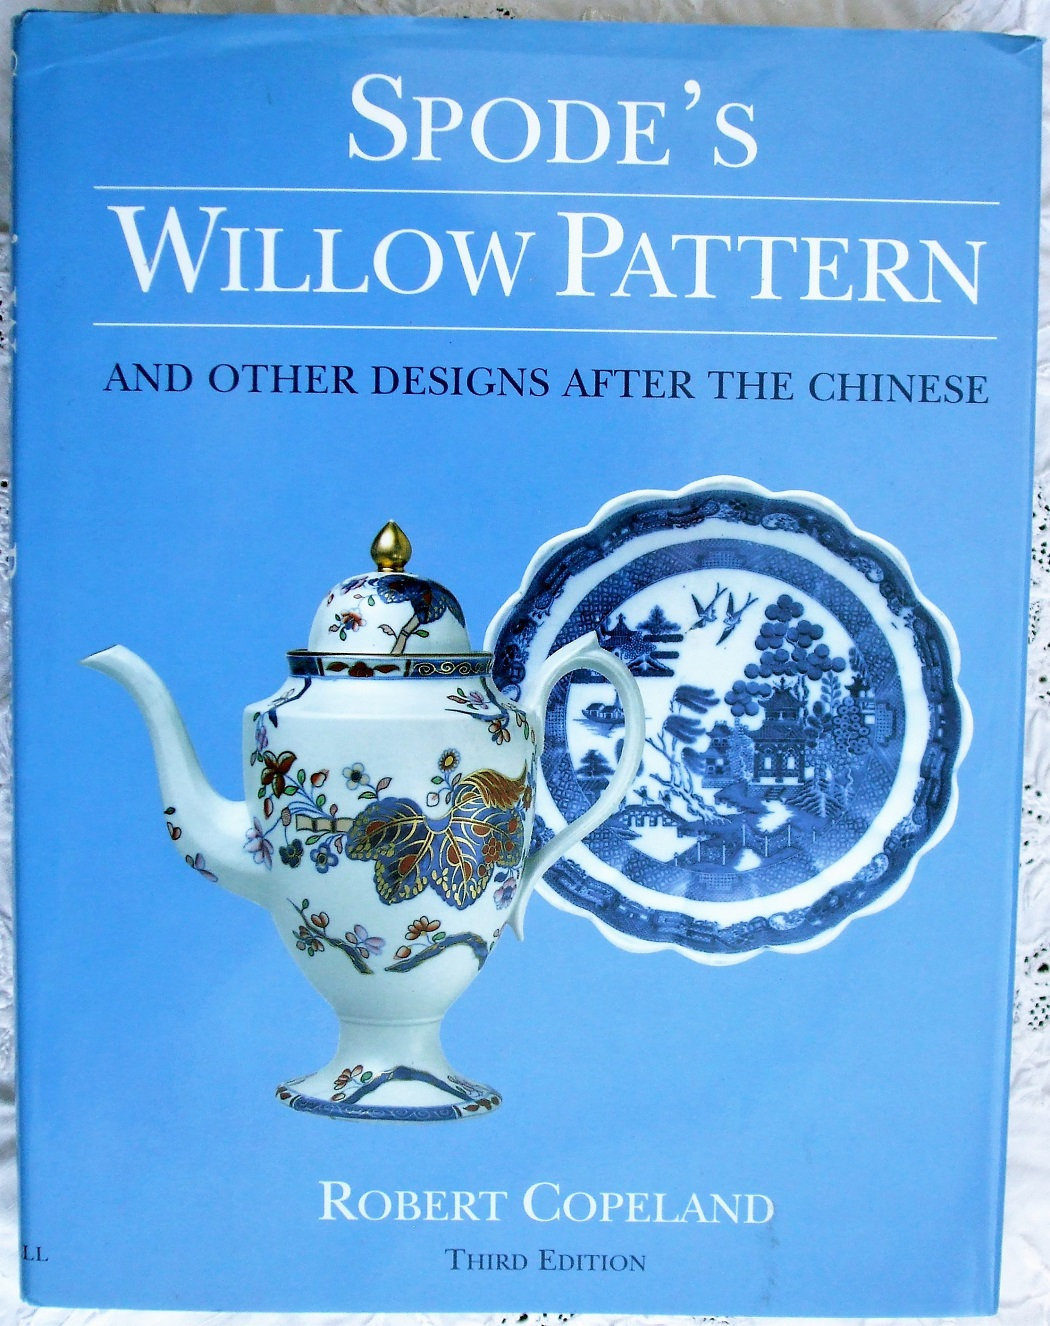 Spode's Willow Pattern